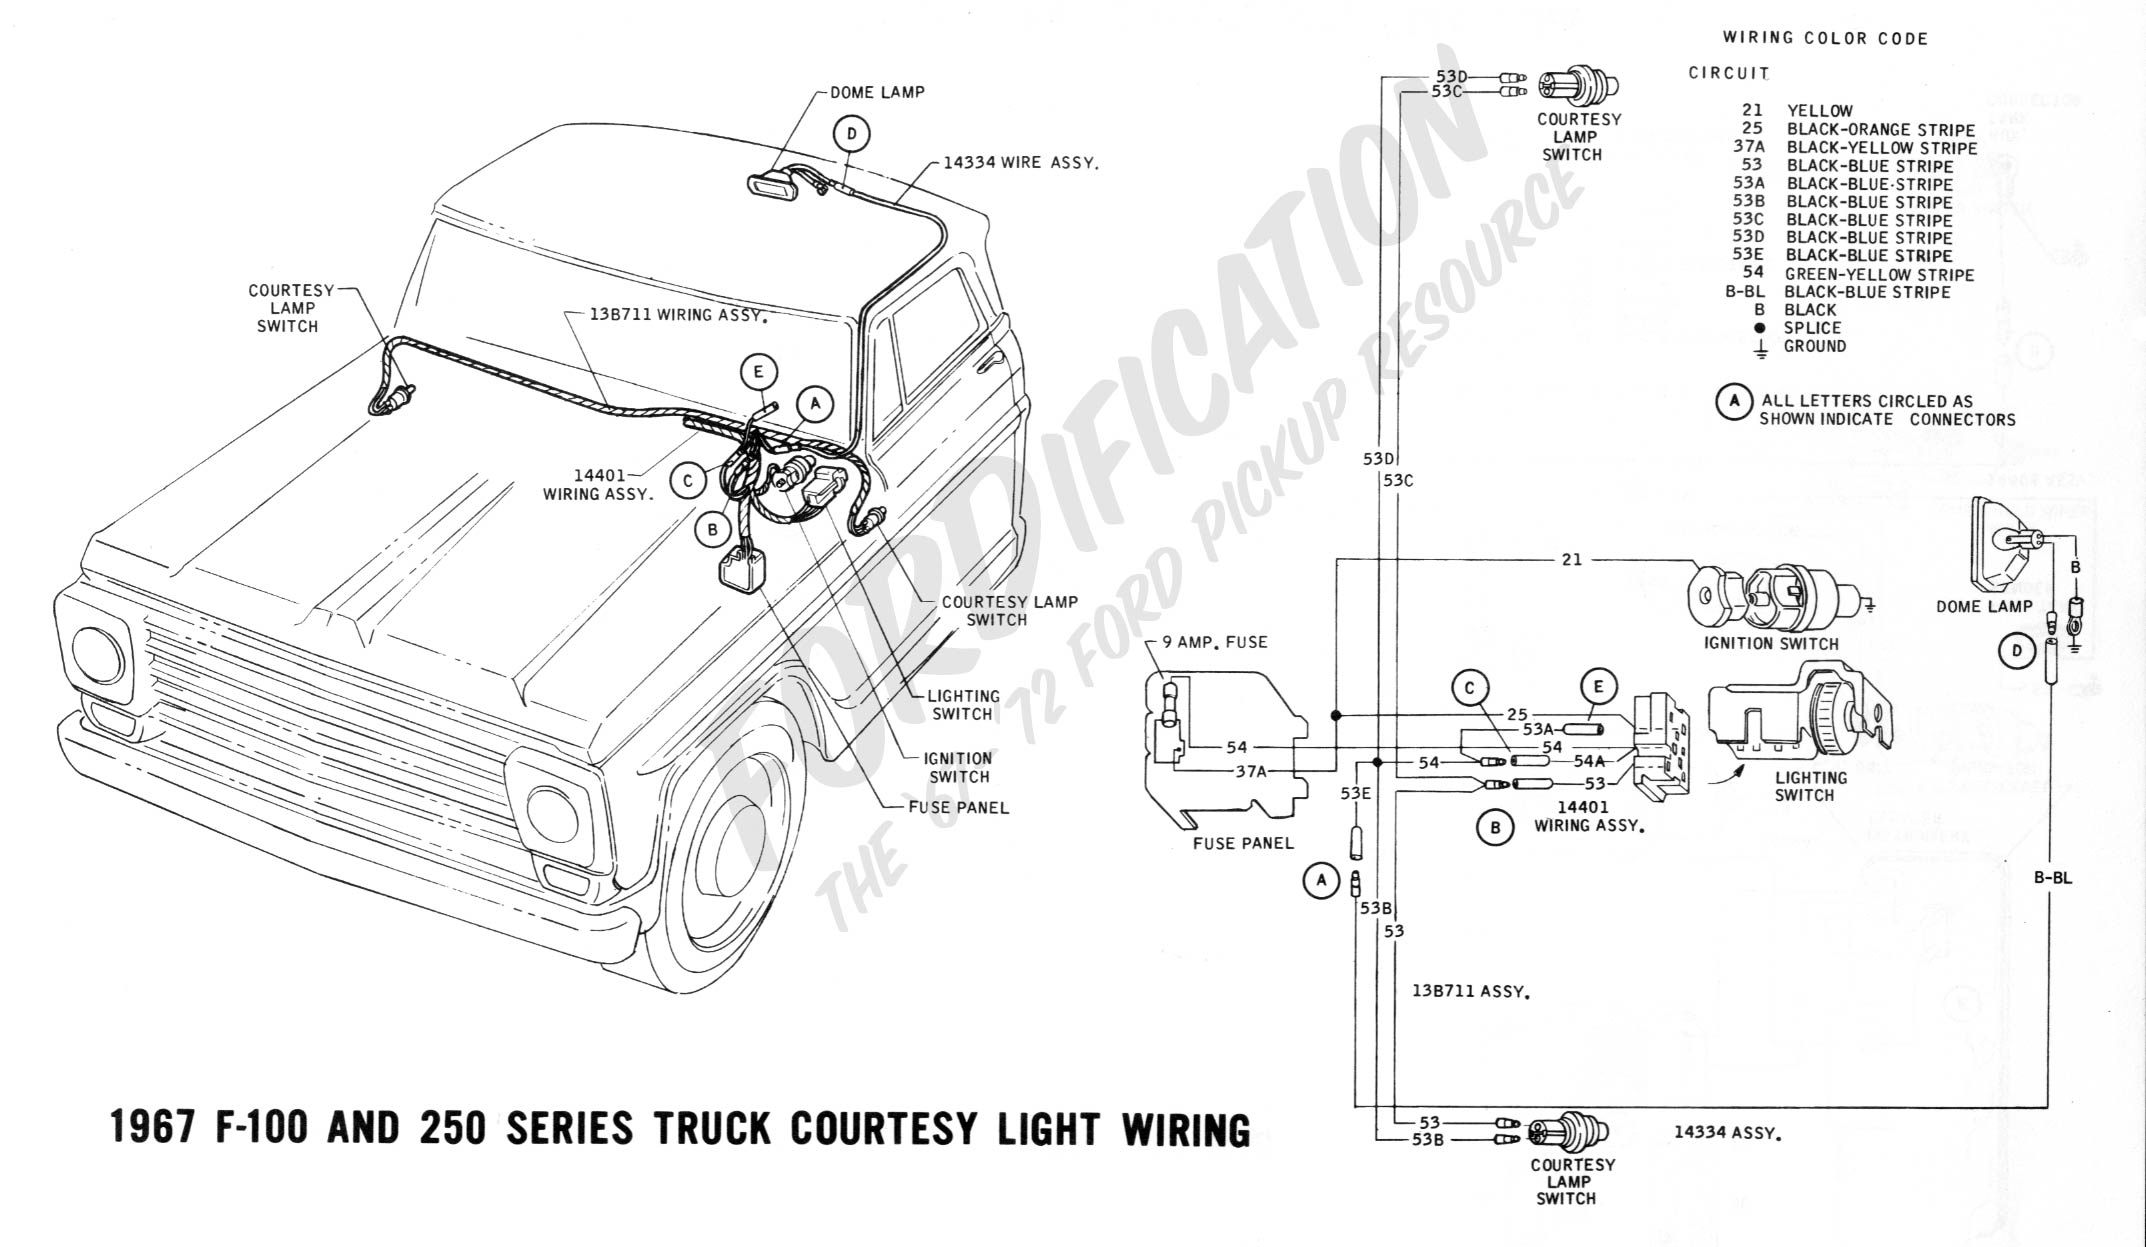 wiring 1967courtesylight ford truck technical drawings and schematics section h wiring 1964 ford f100 wiring diagram at crackthecode.co